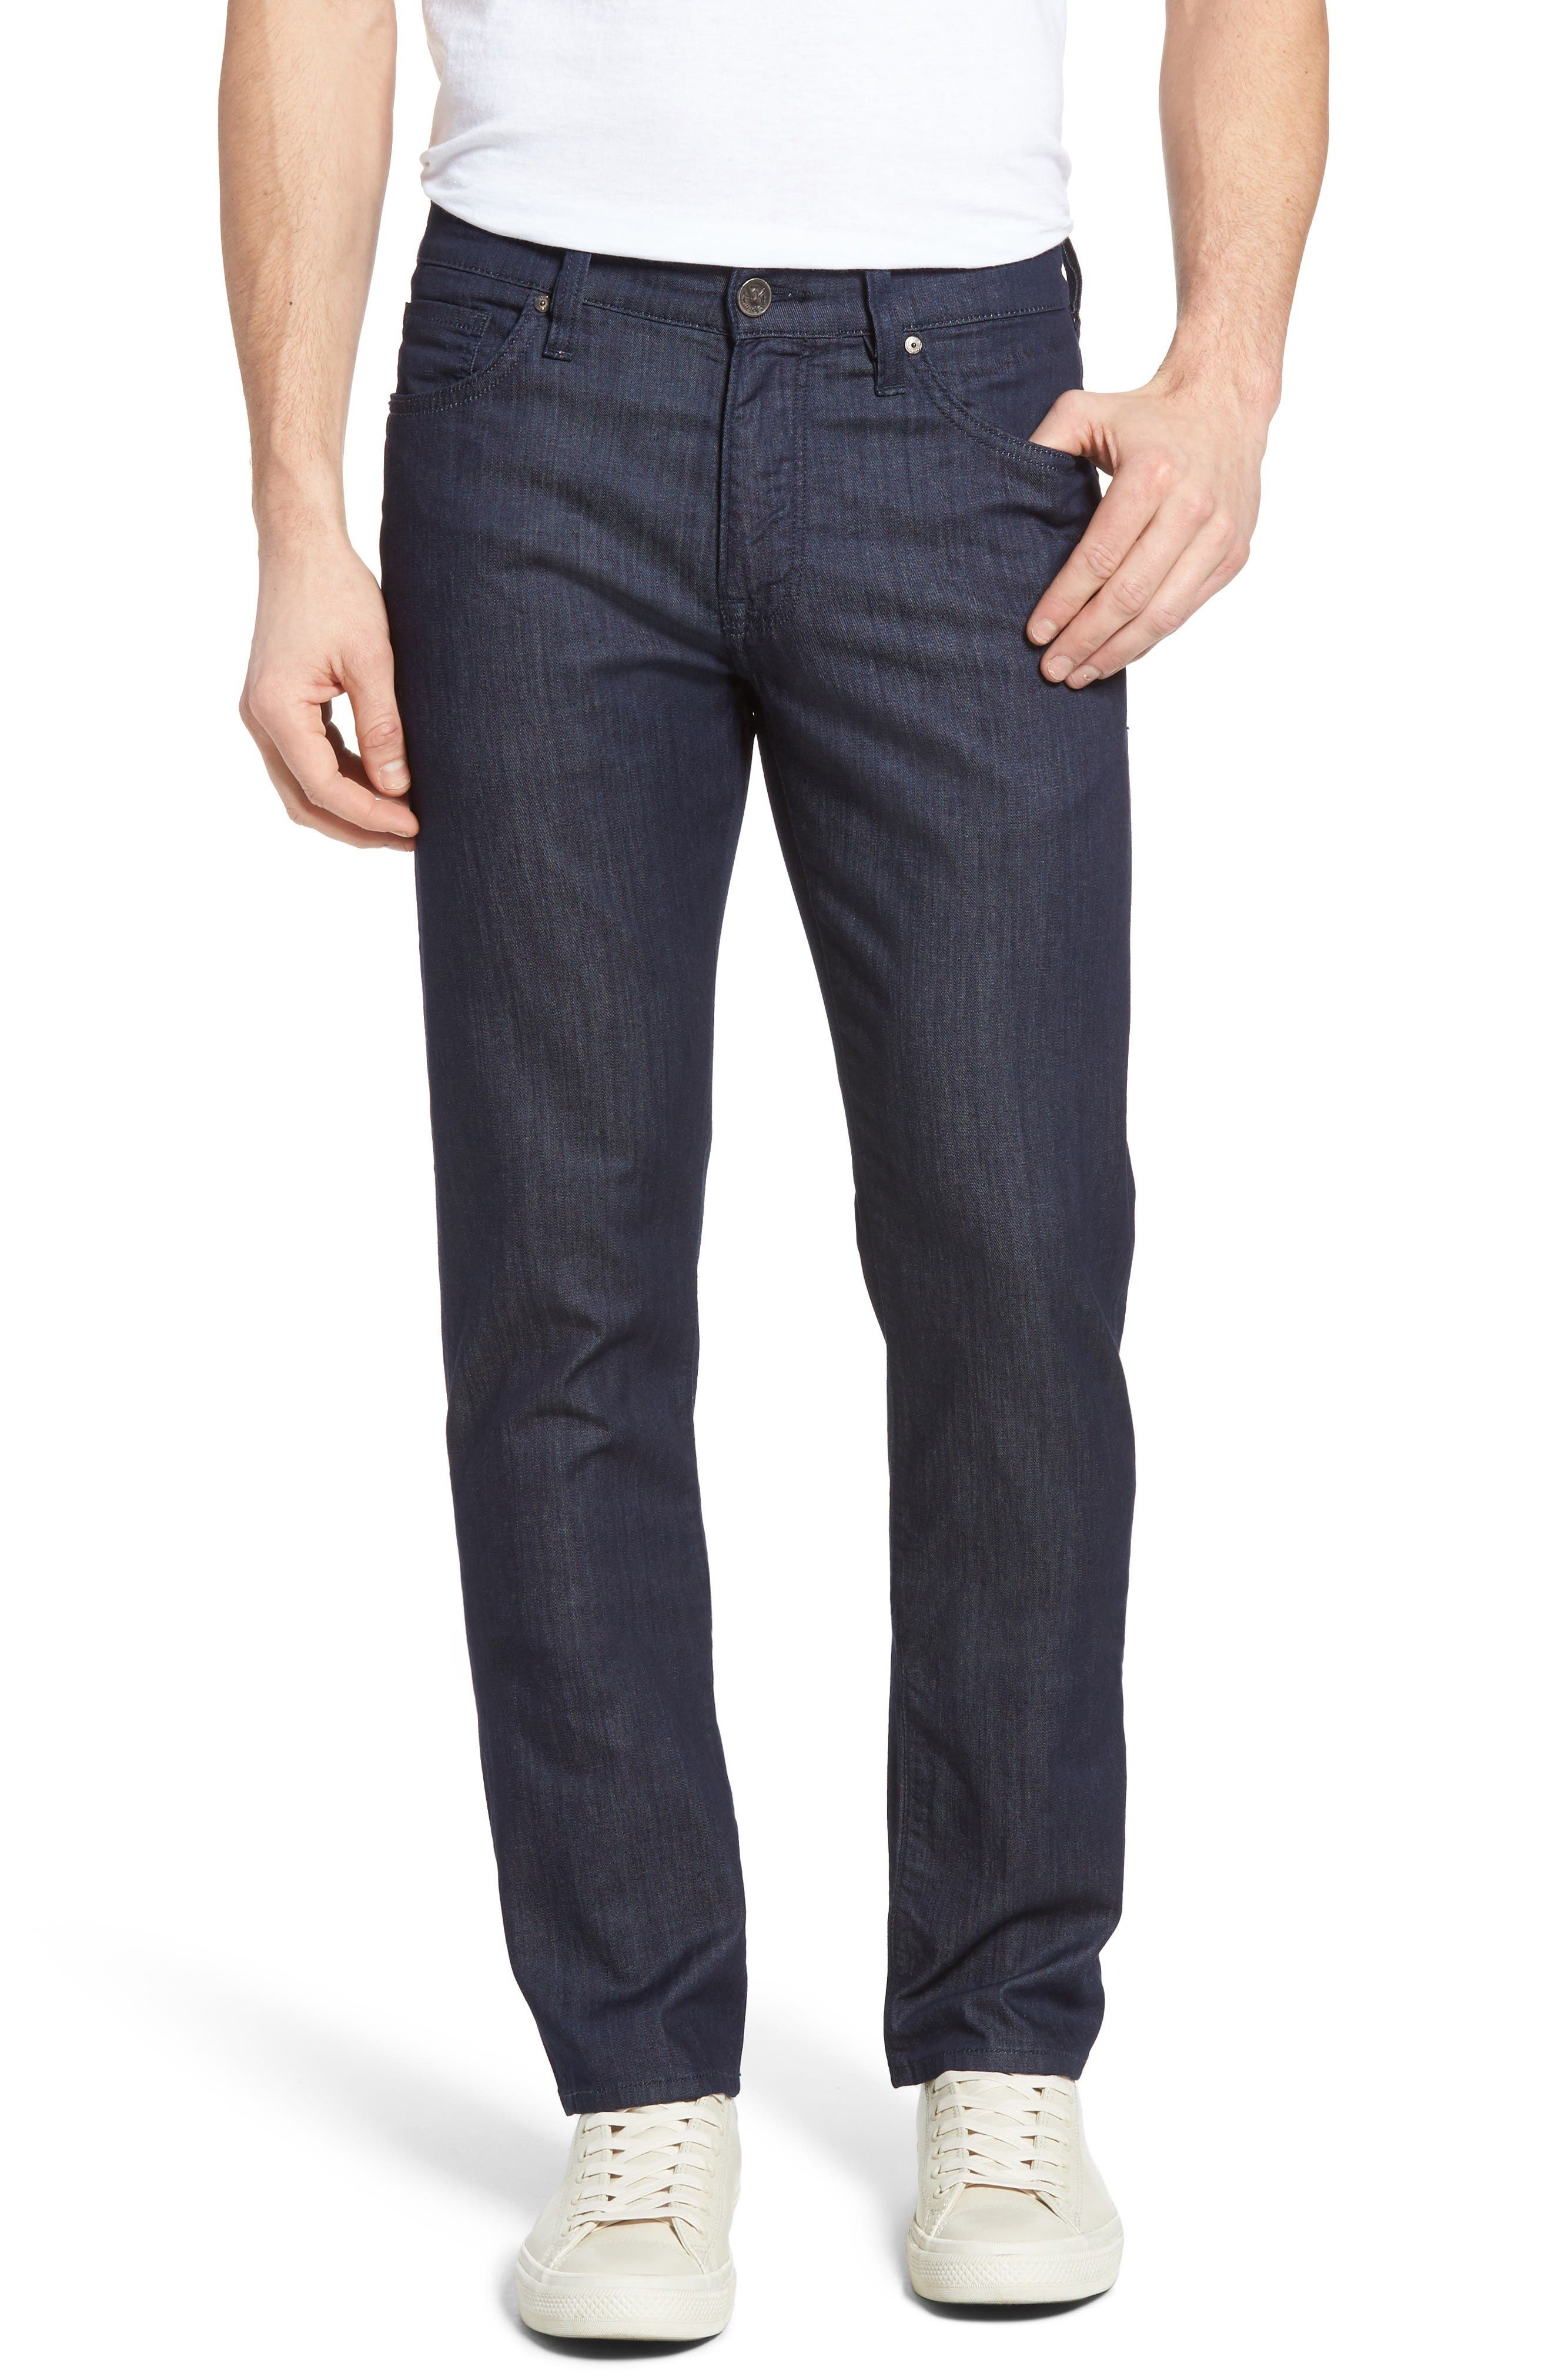 34 Heritage Courage Straight Leg Jeans (Rinse Summer)